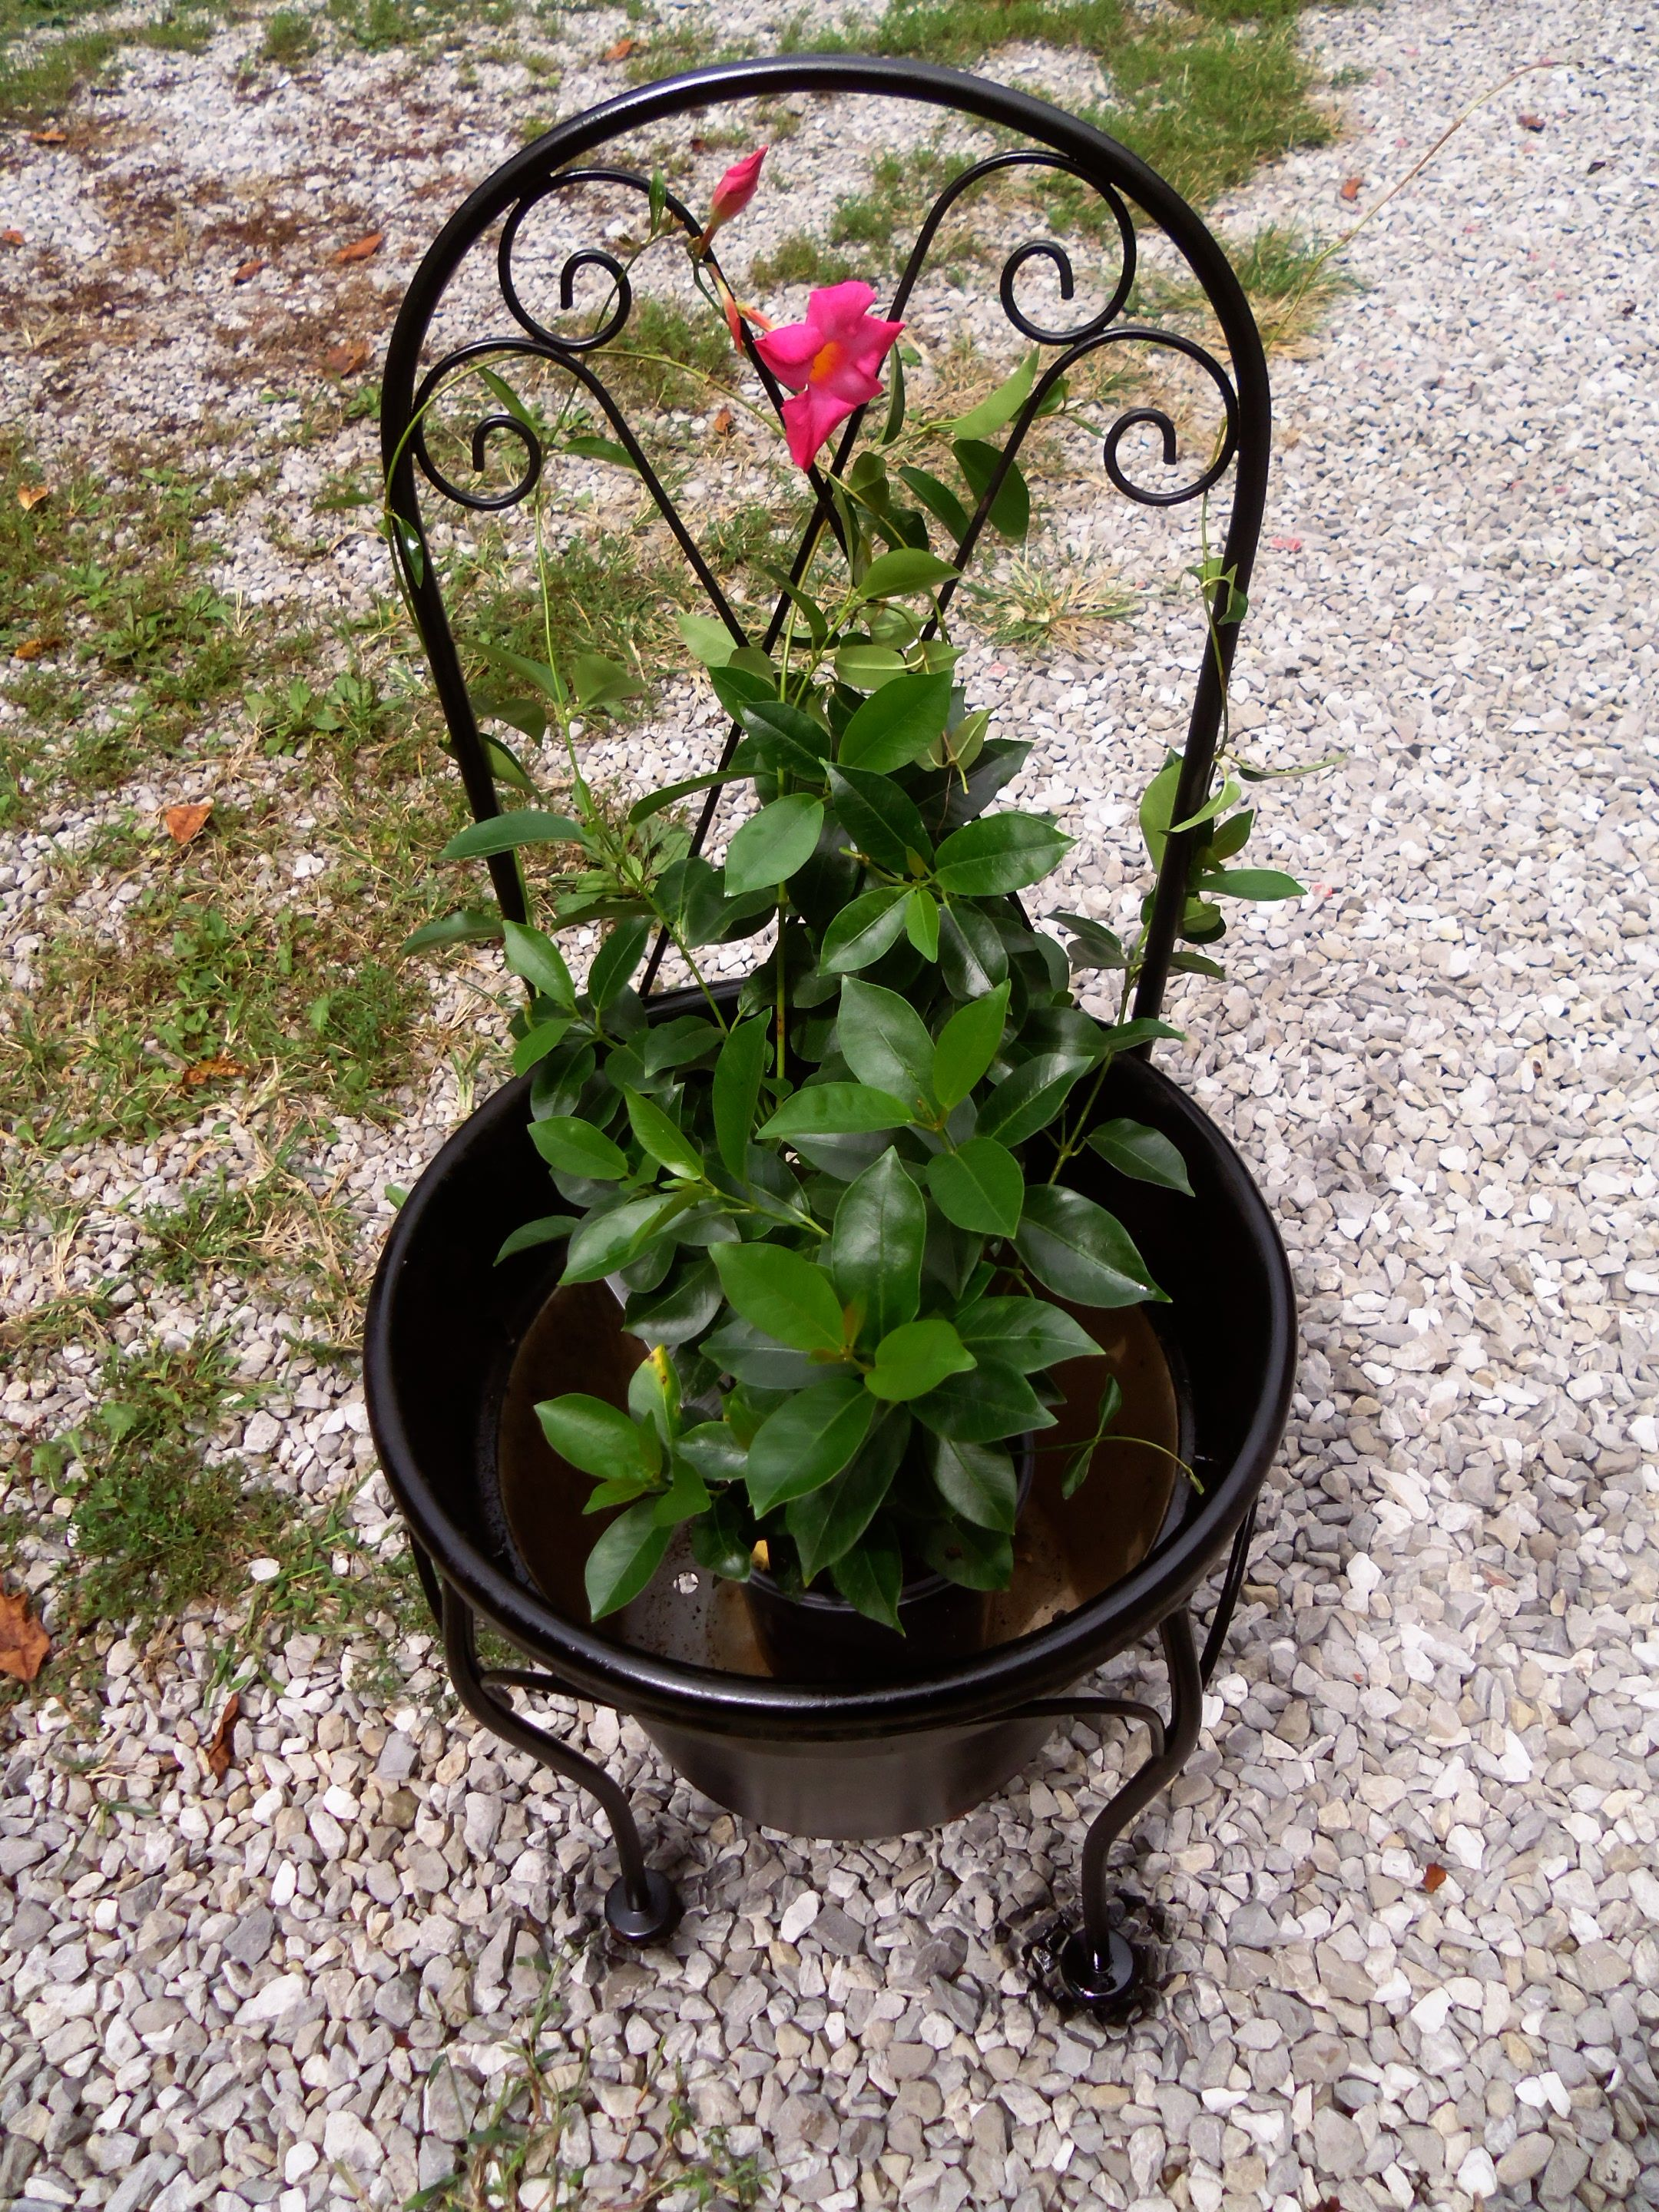 Old Metal Chair With No Seat, Old Flower Pot With